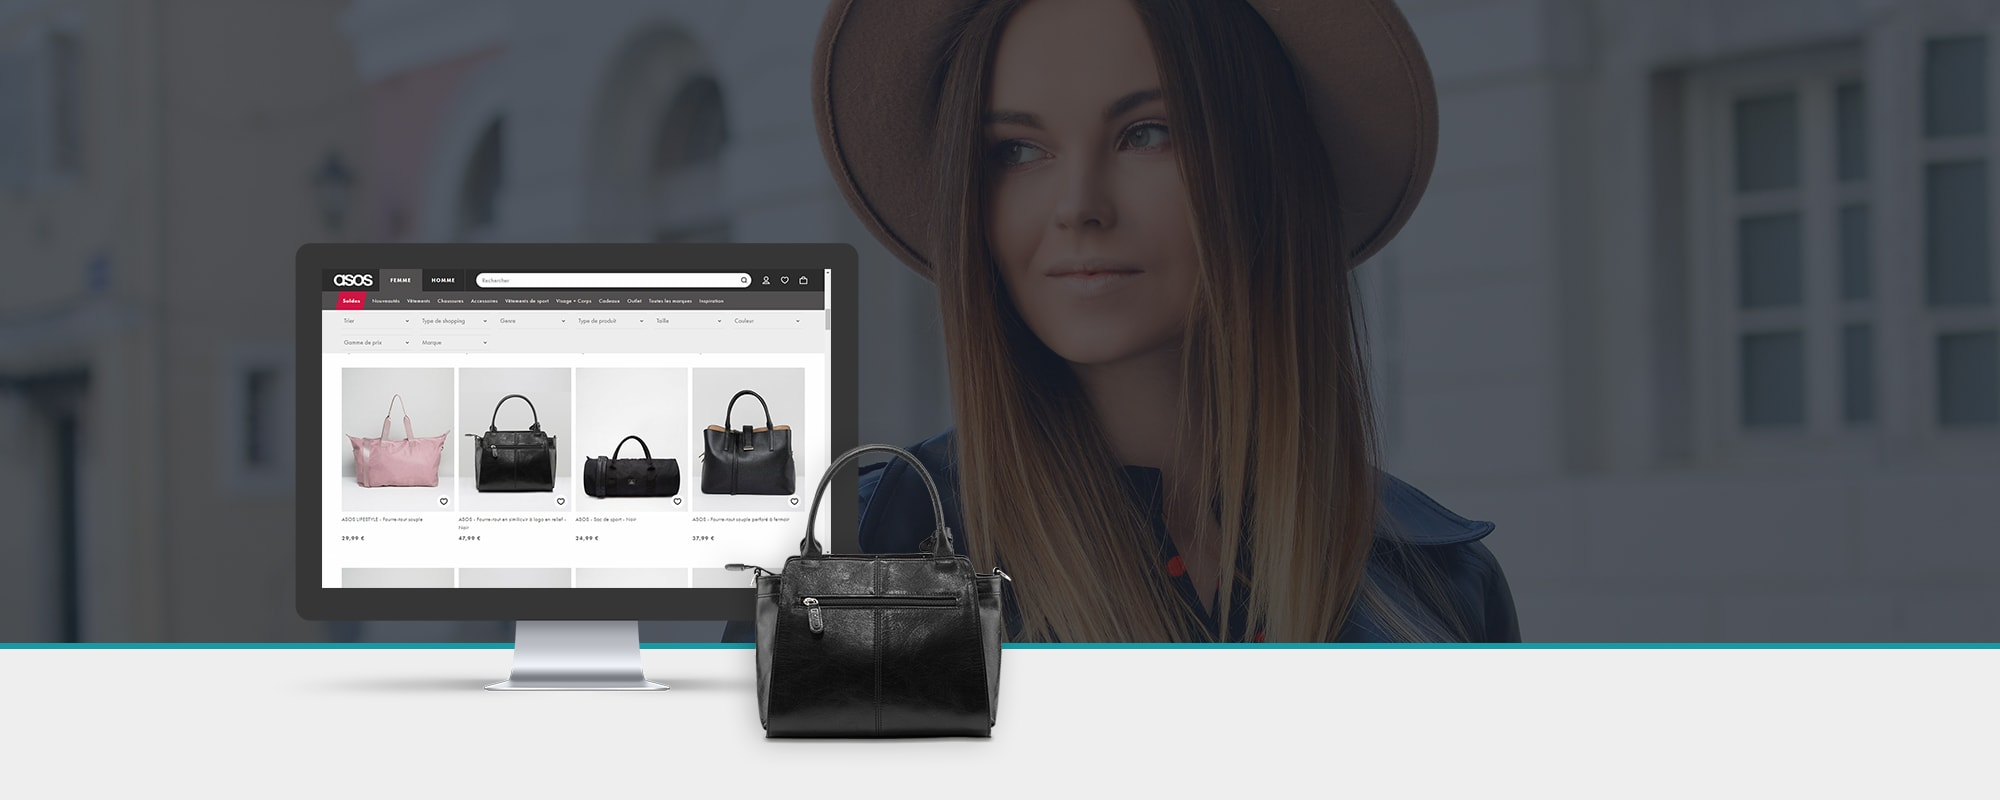 E-commerce image clipping services - Clip It